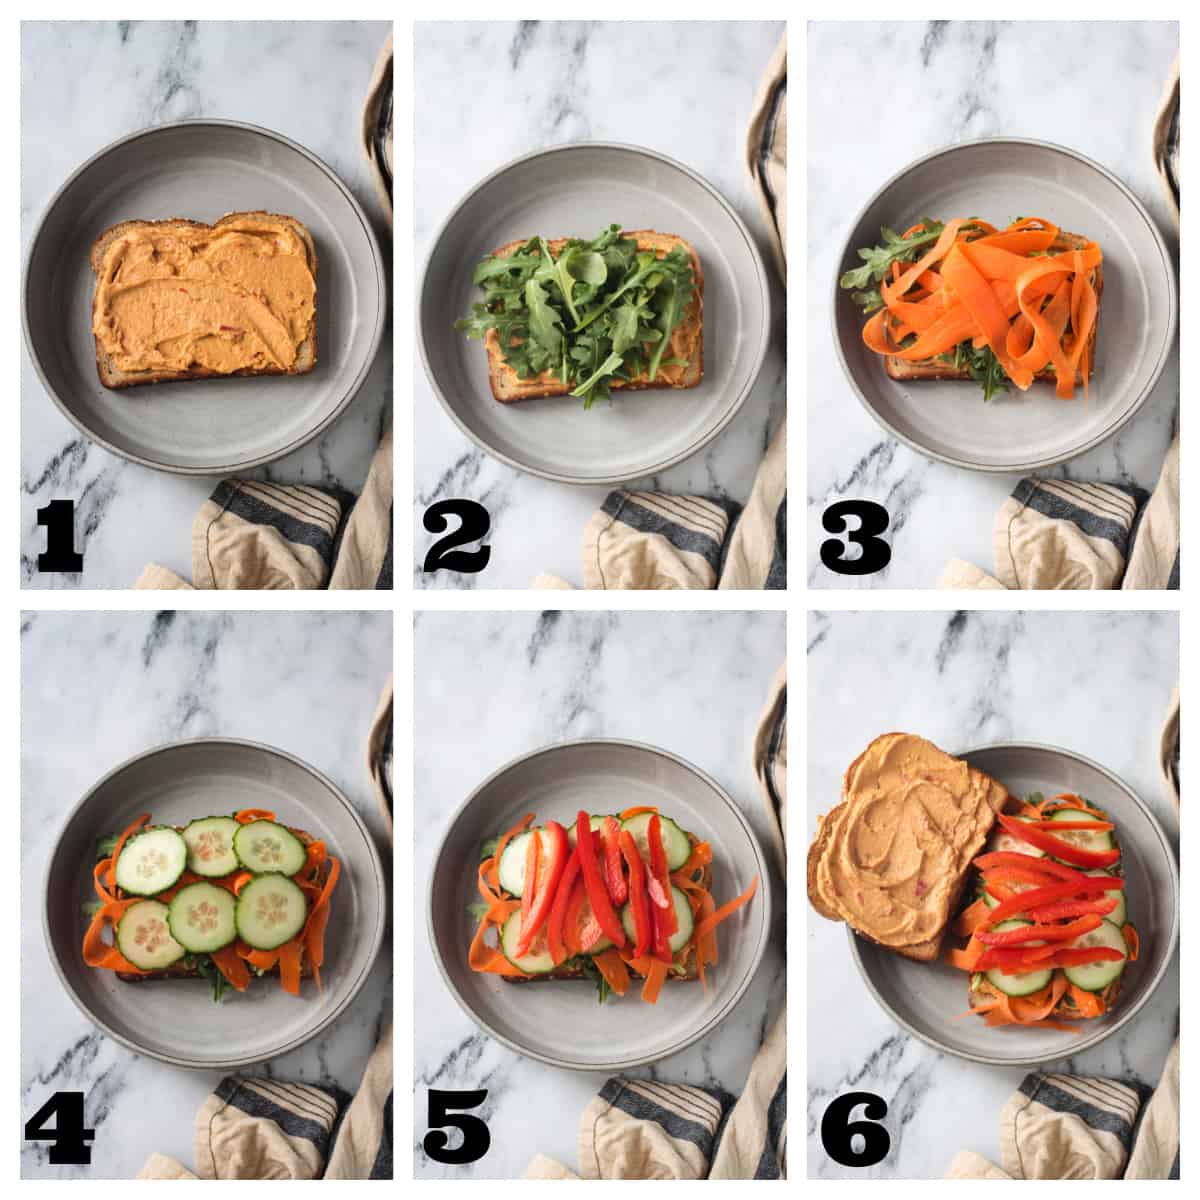 6 photo collage of step by step instructions on making a hummus sandwich.